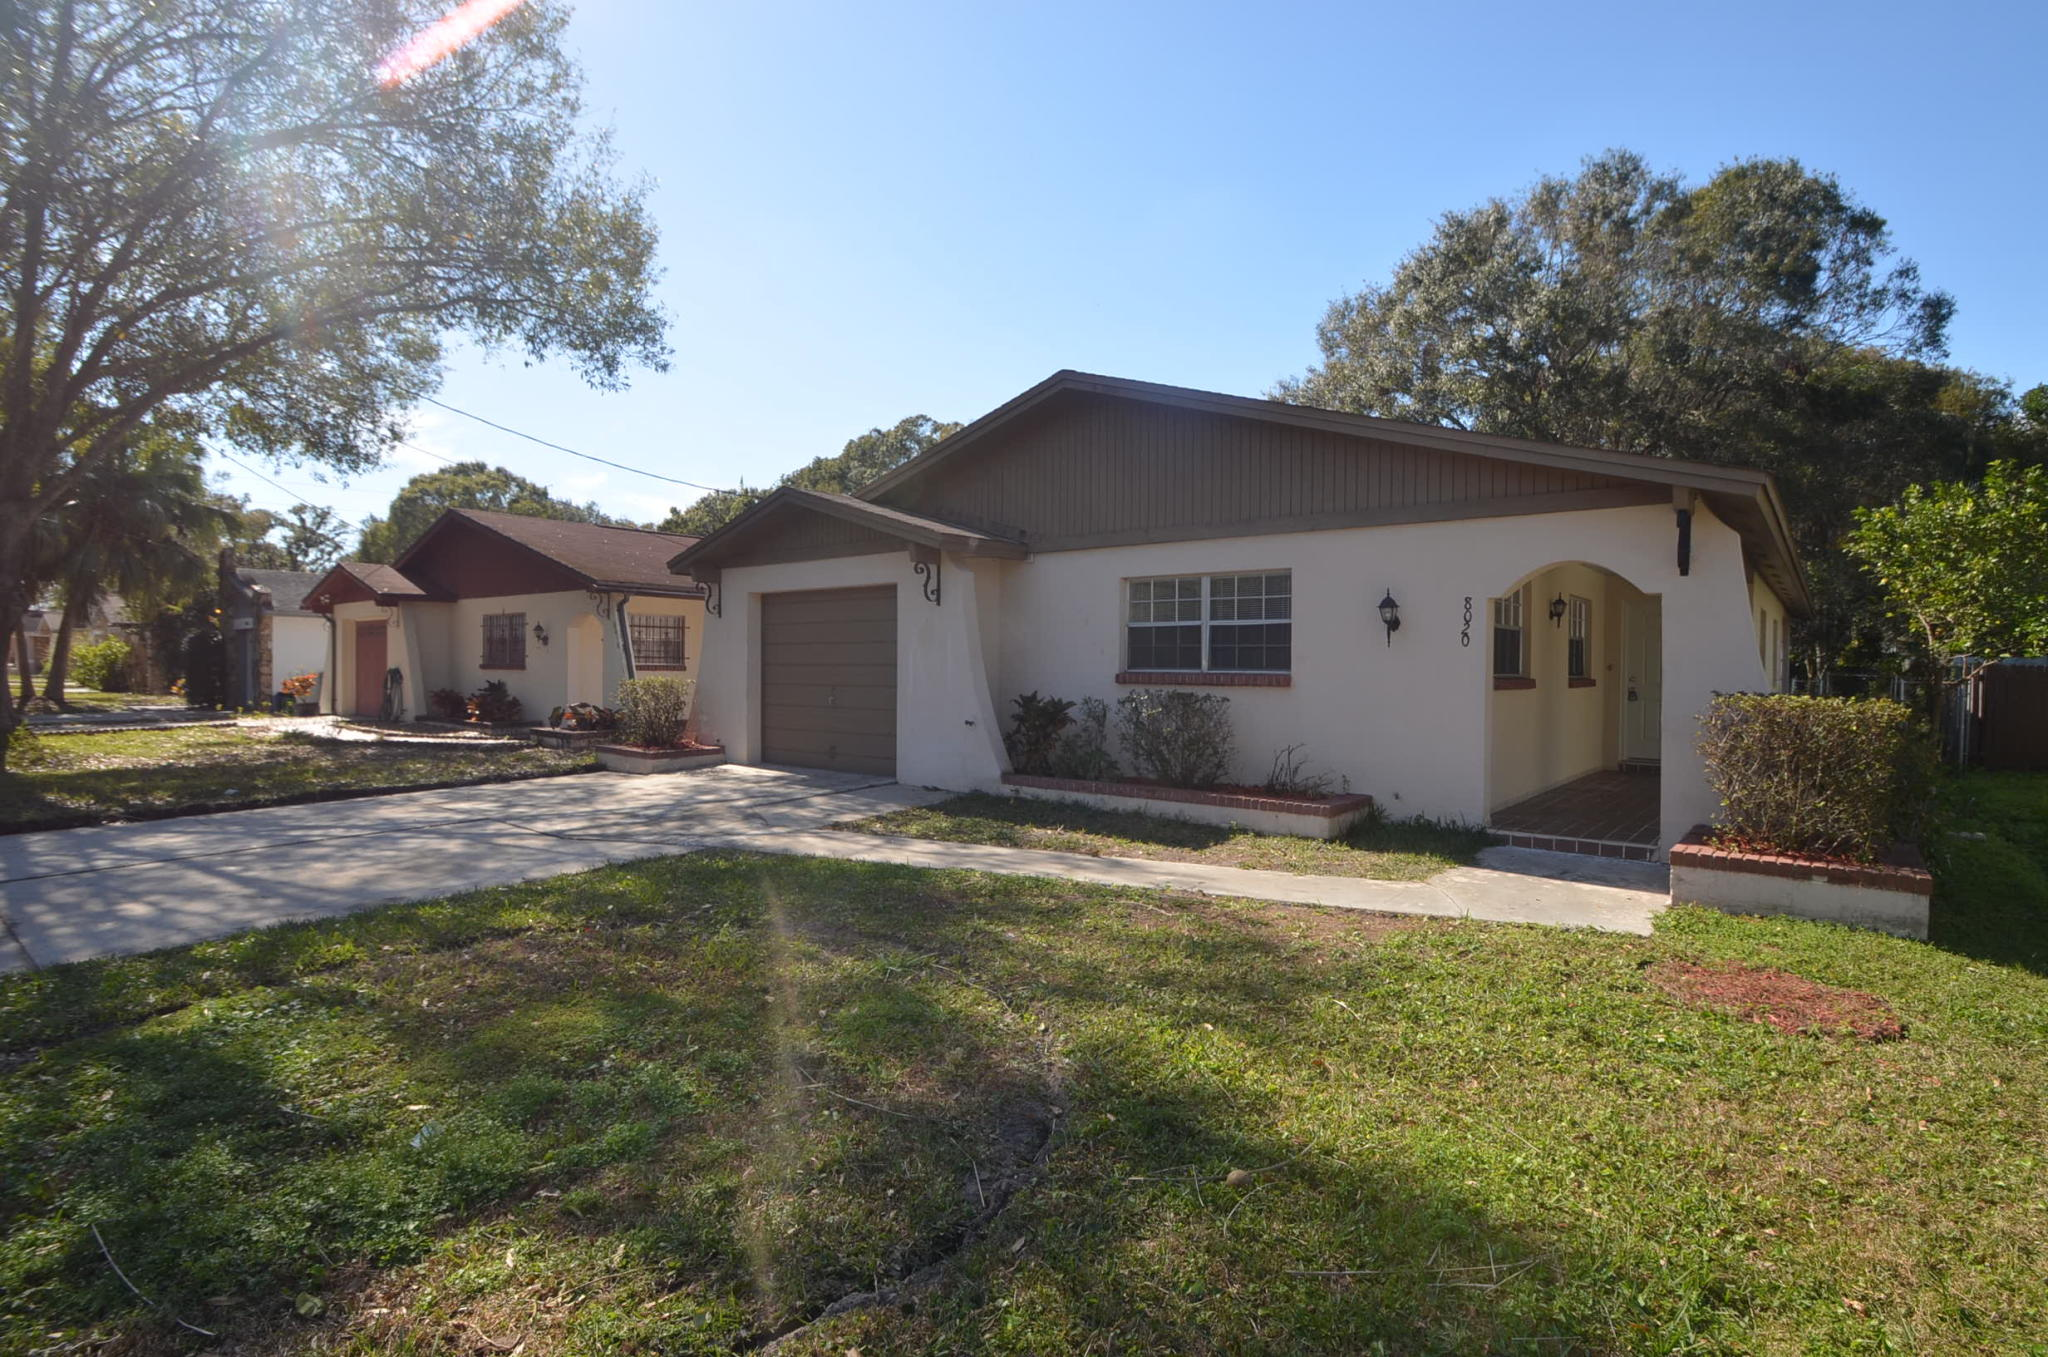 8020 paddock ave for rent tampa fl trulia